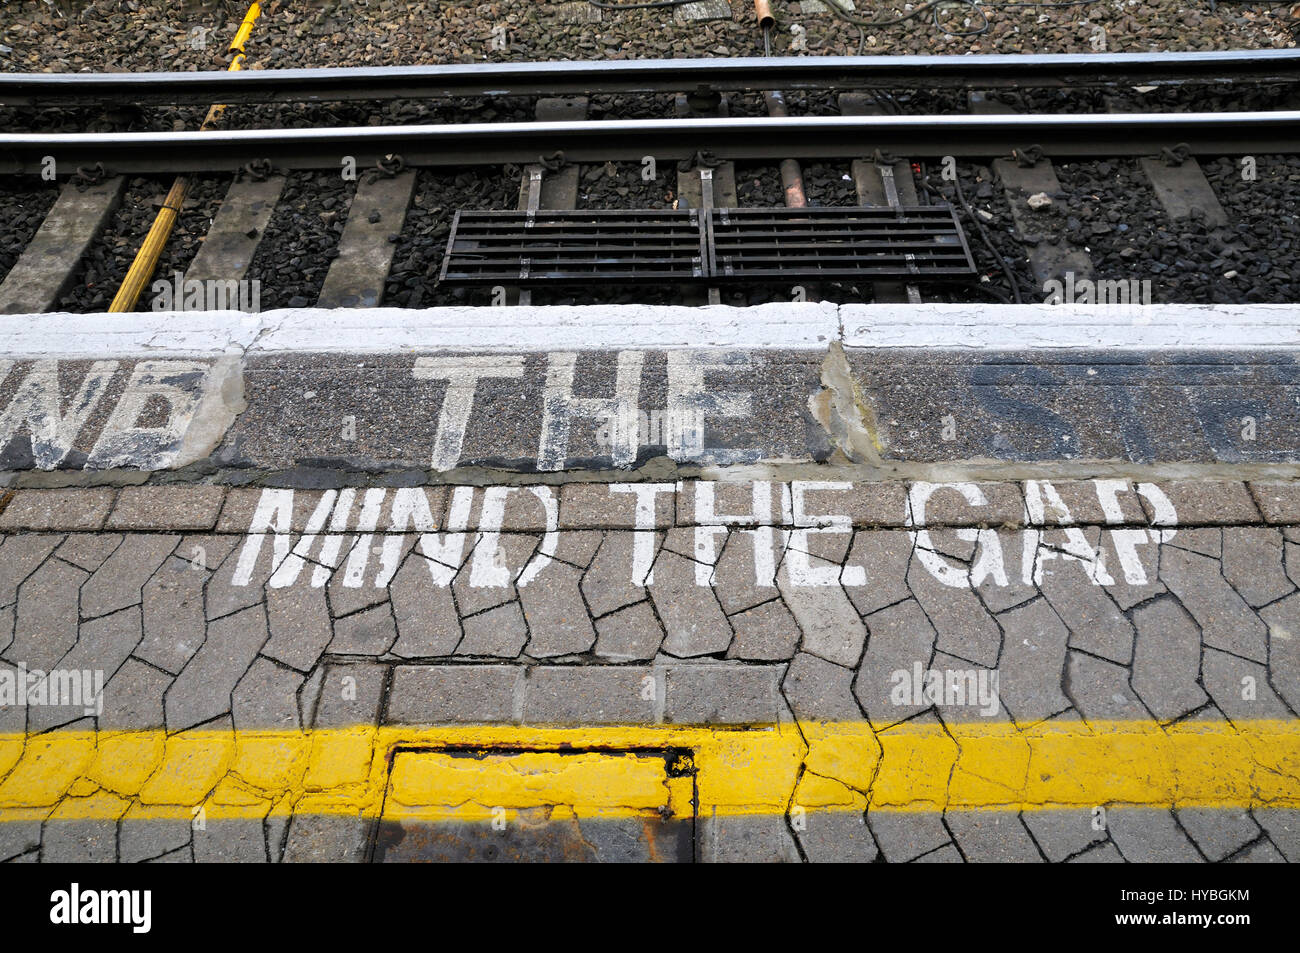 Mind The Gap painted on the edge of a train platform - Stock Image